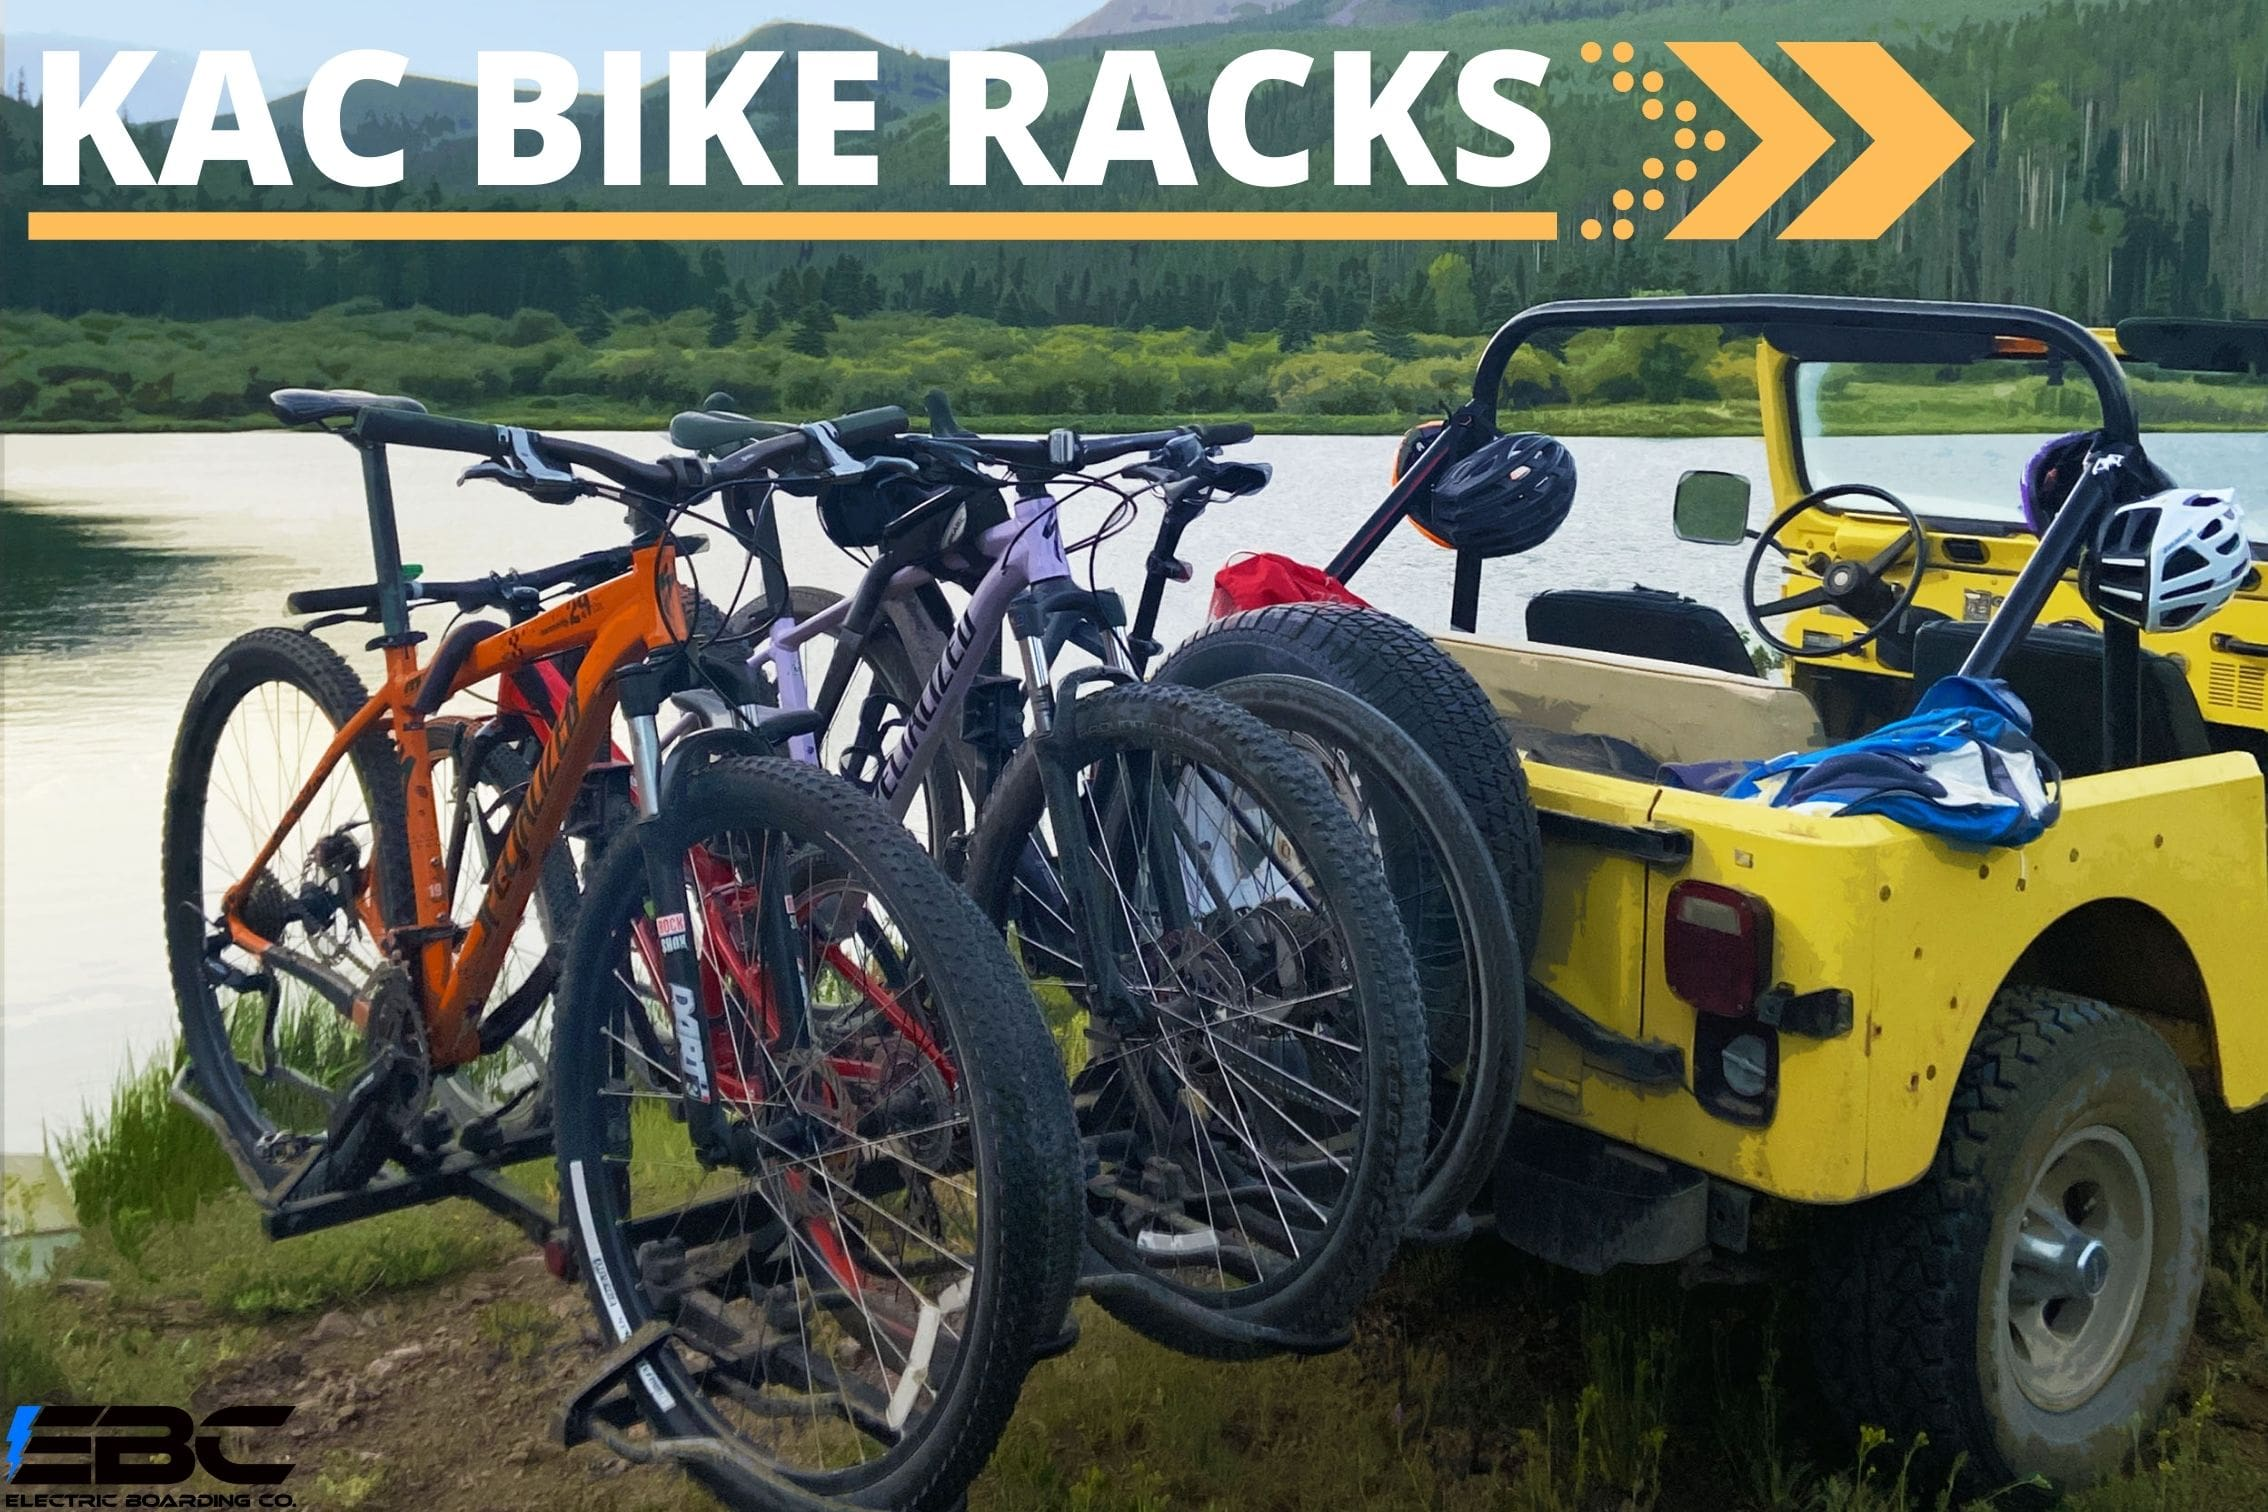 KAC Bike Racks